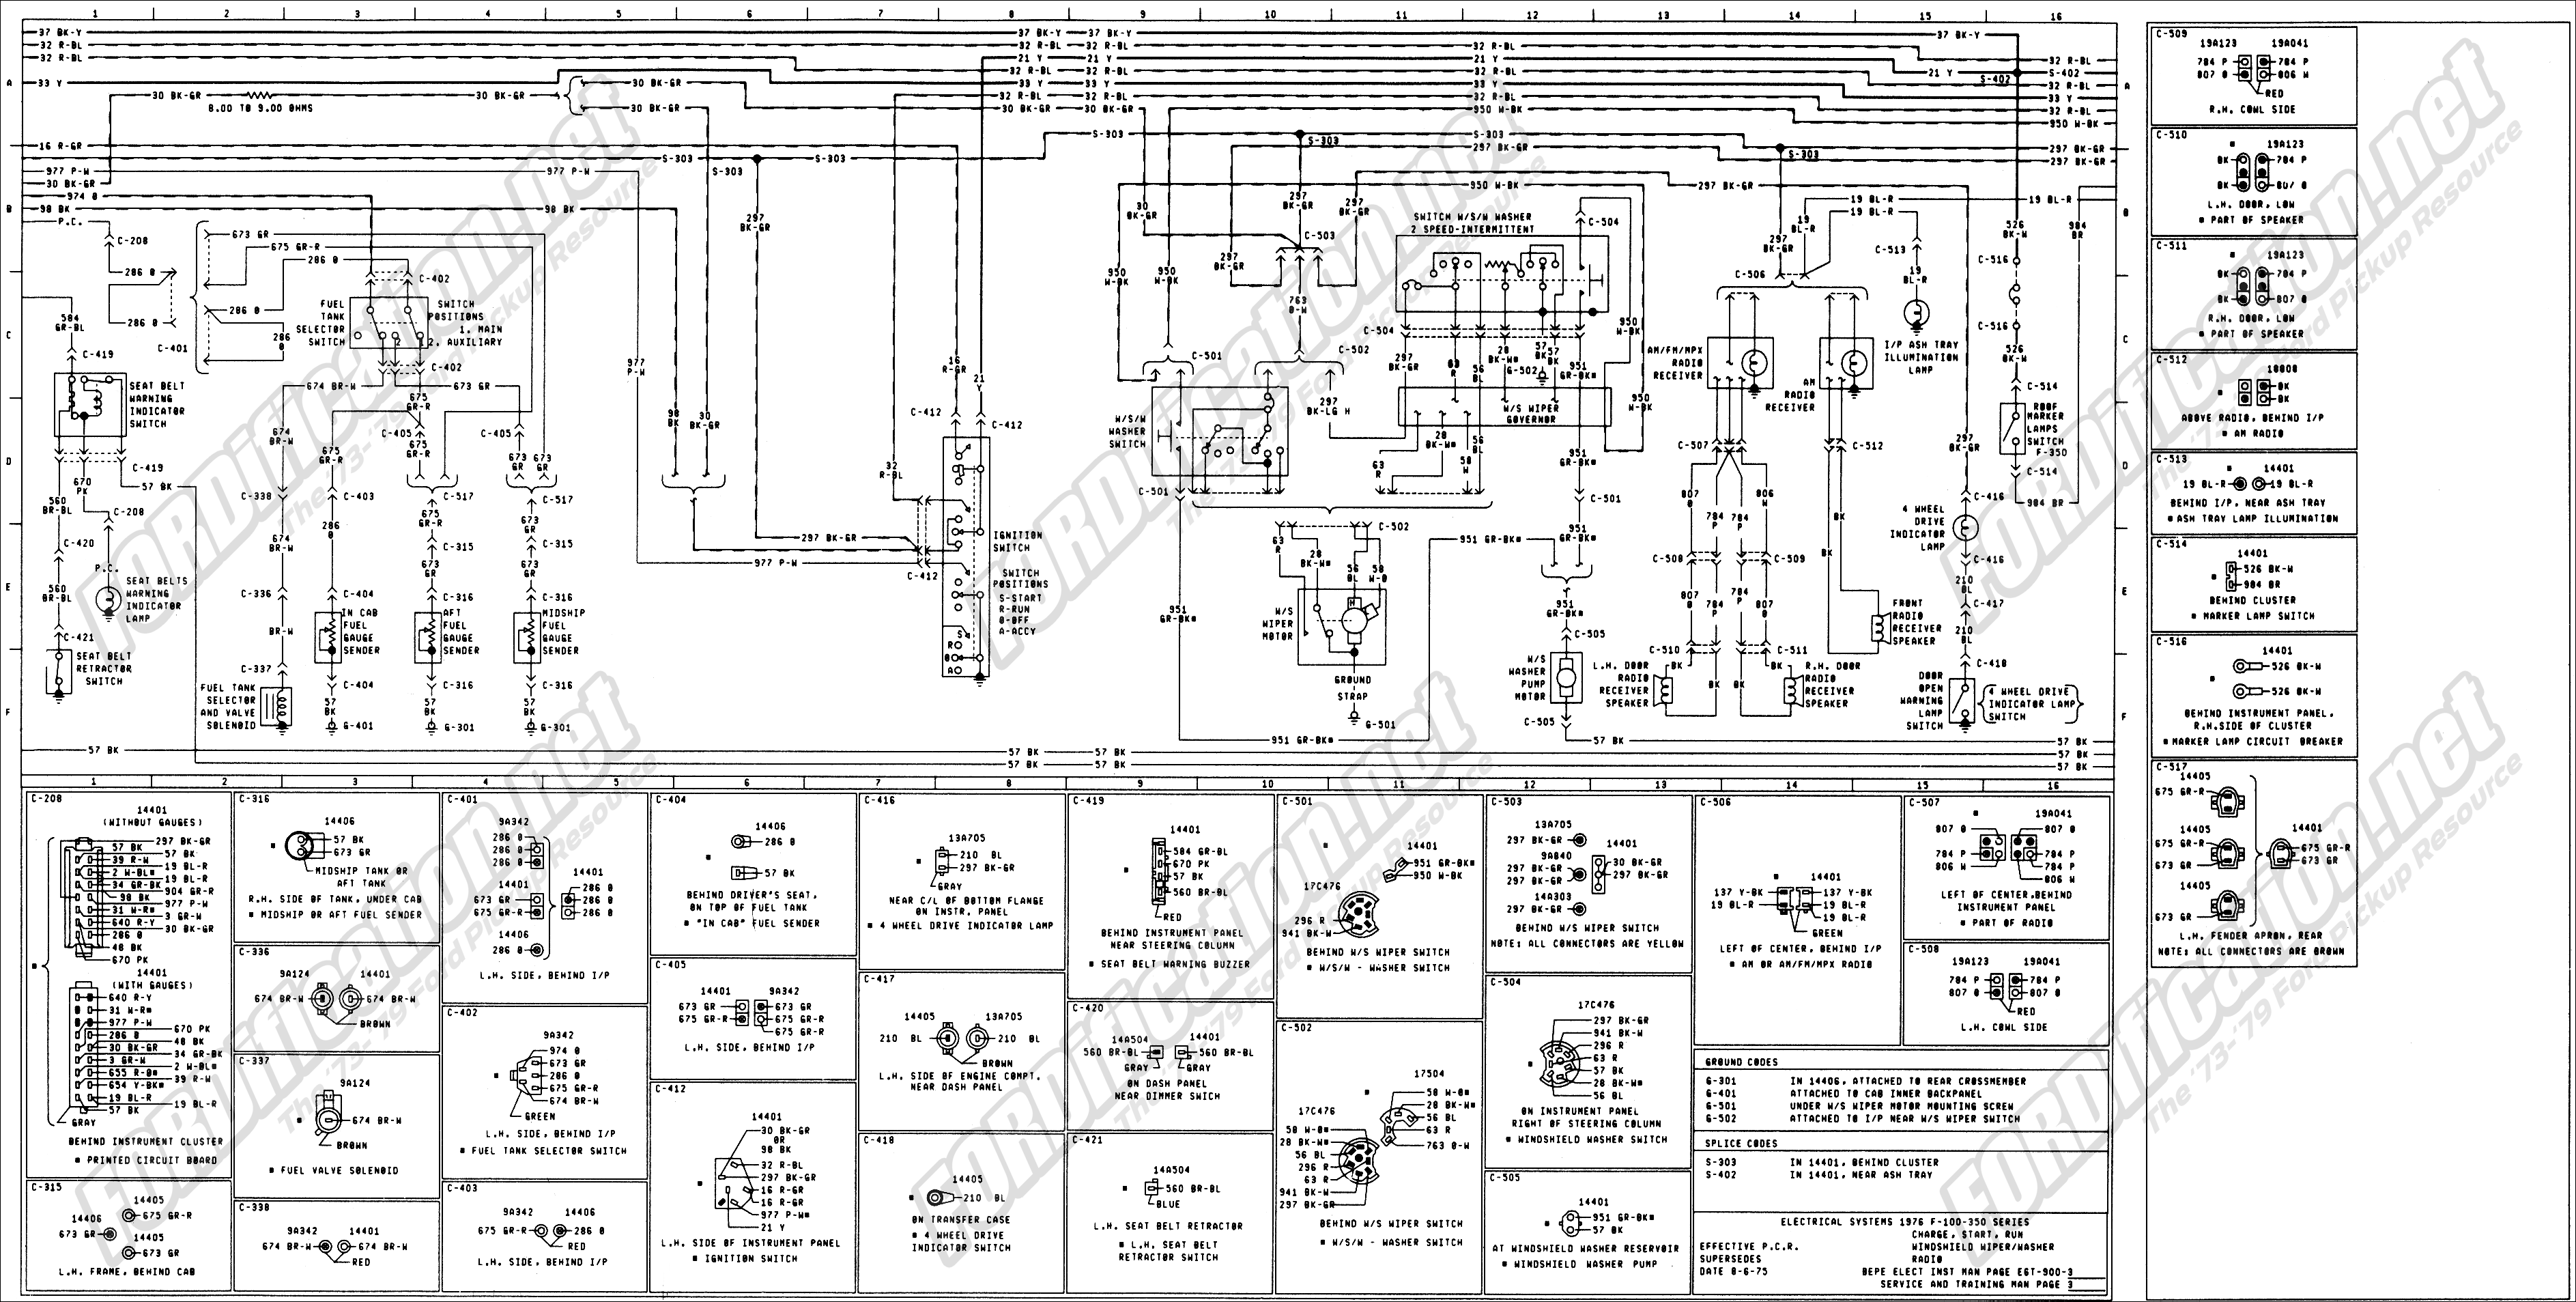 2011 ford f250 super duty wiring diagram